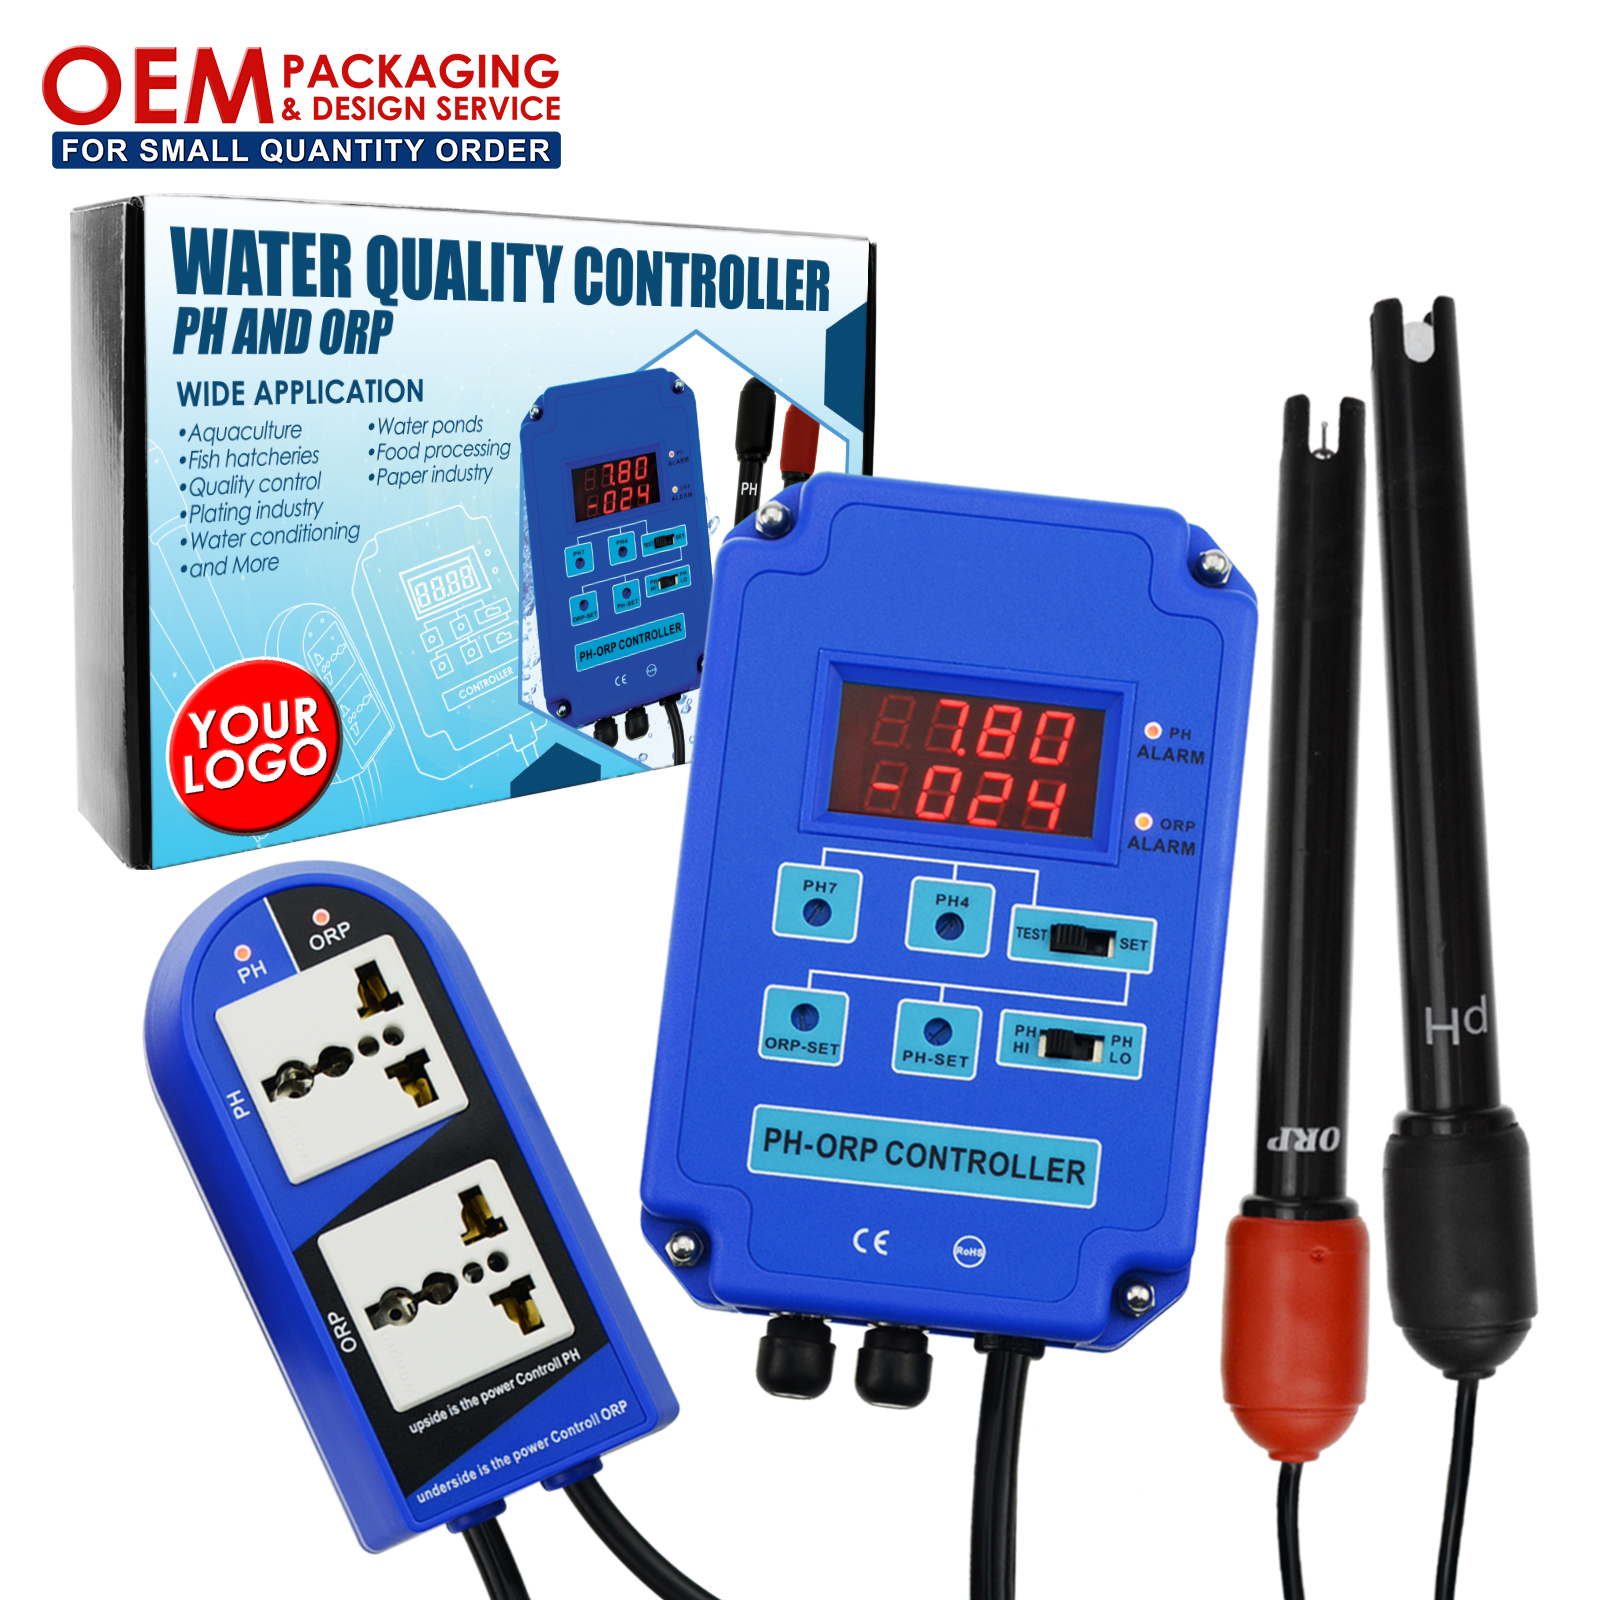 Digital 2 in 1 pH ORP Controller with Output Power Relay Control Water Quality Tester online measure(OEM packaging available)